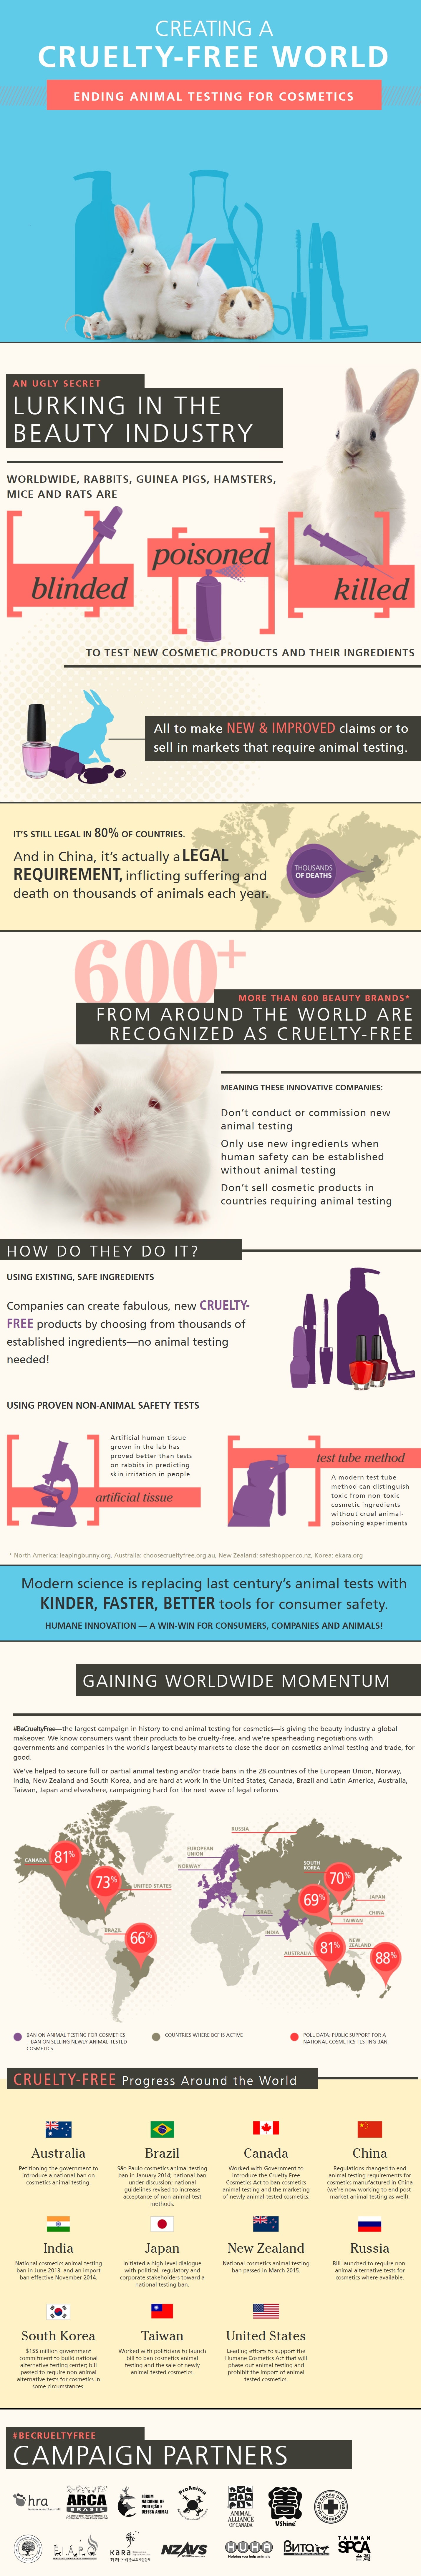 creating a cruelty free world